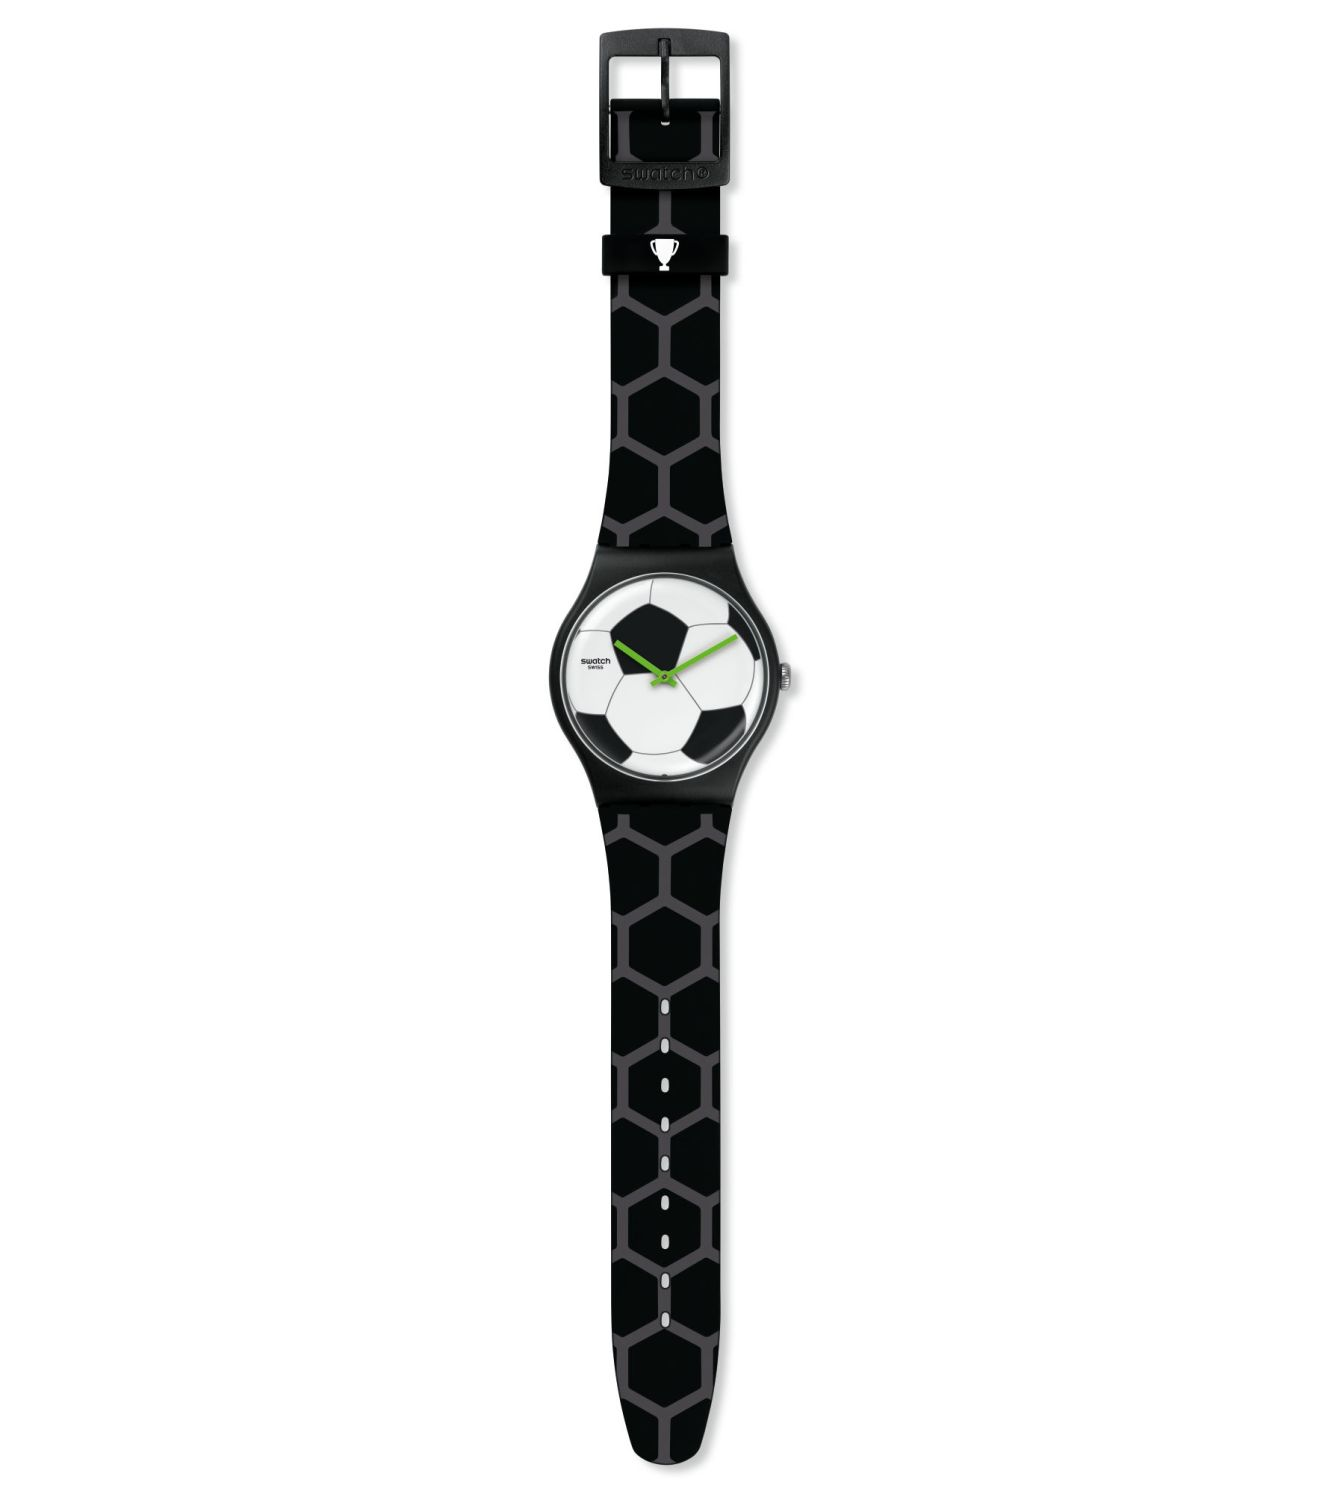 swatch_Foot-5